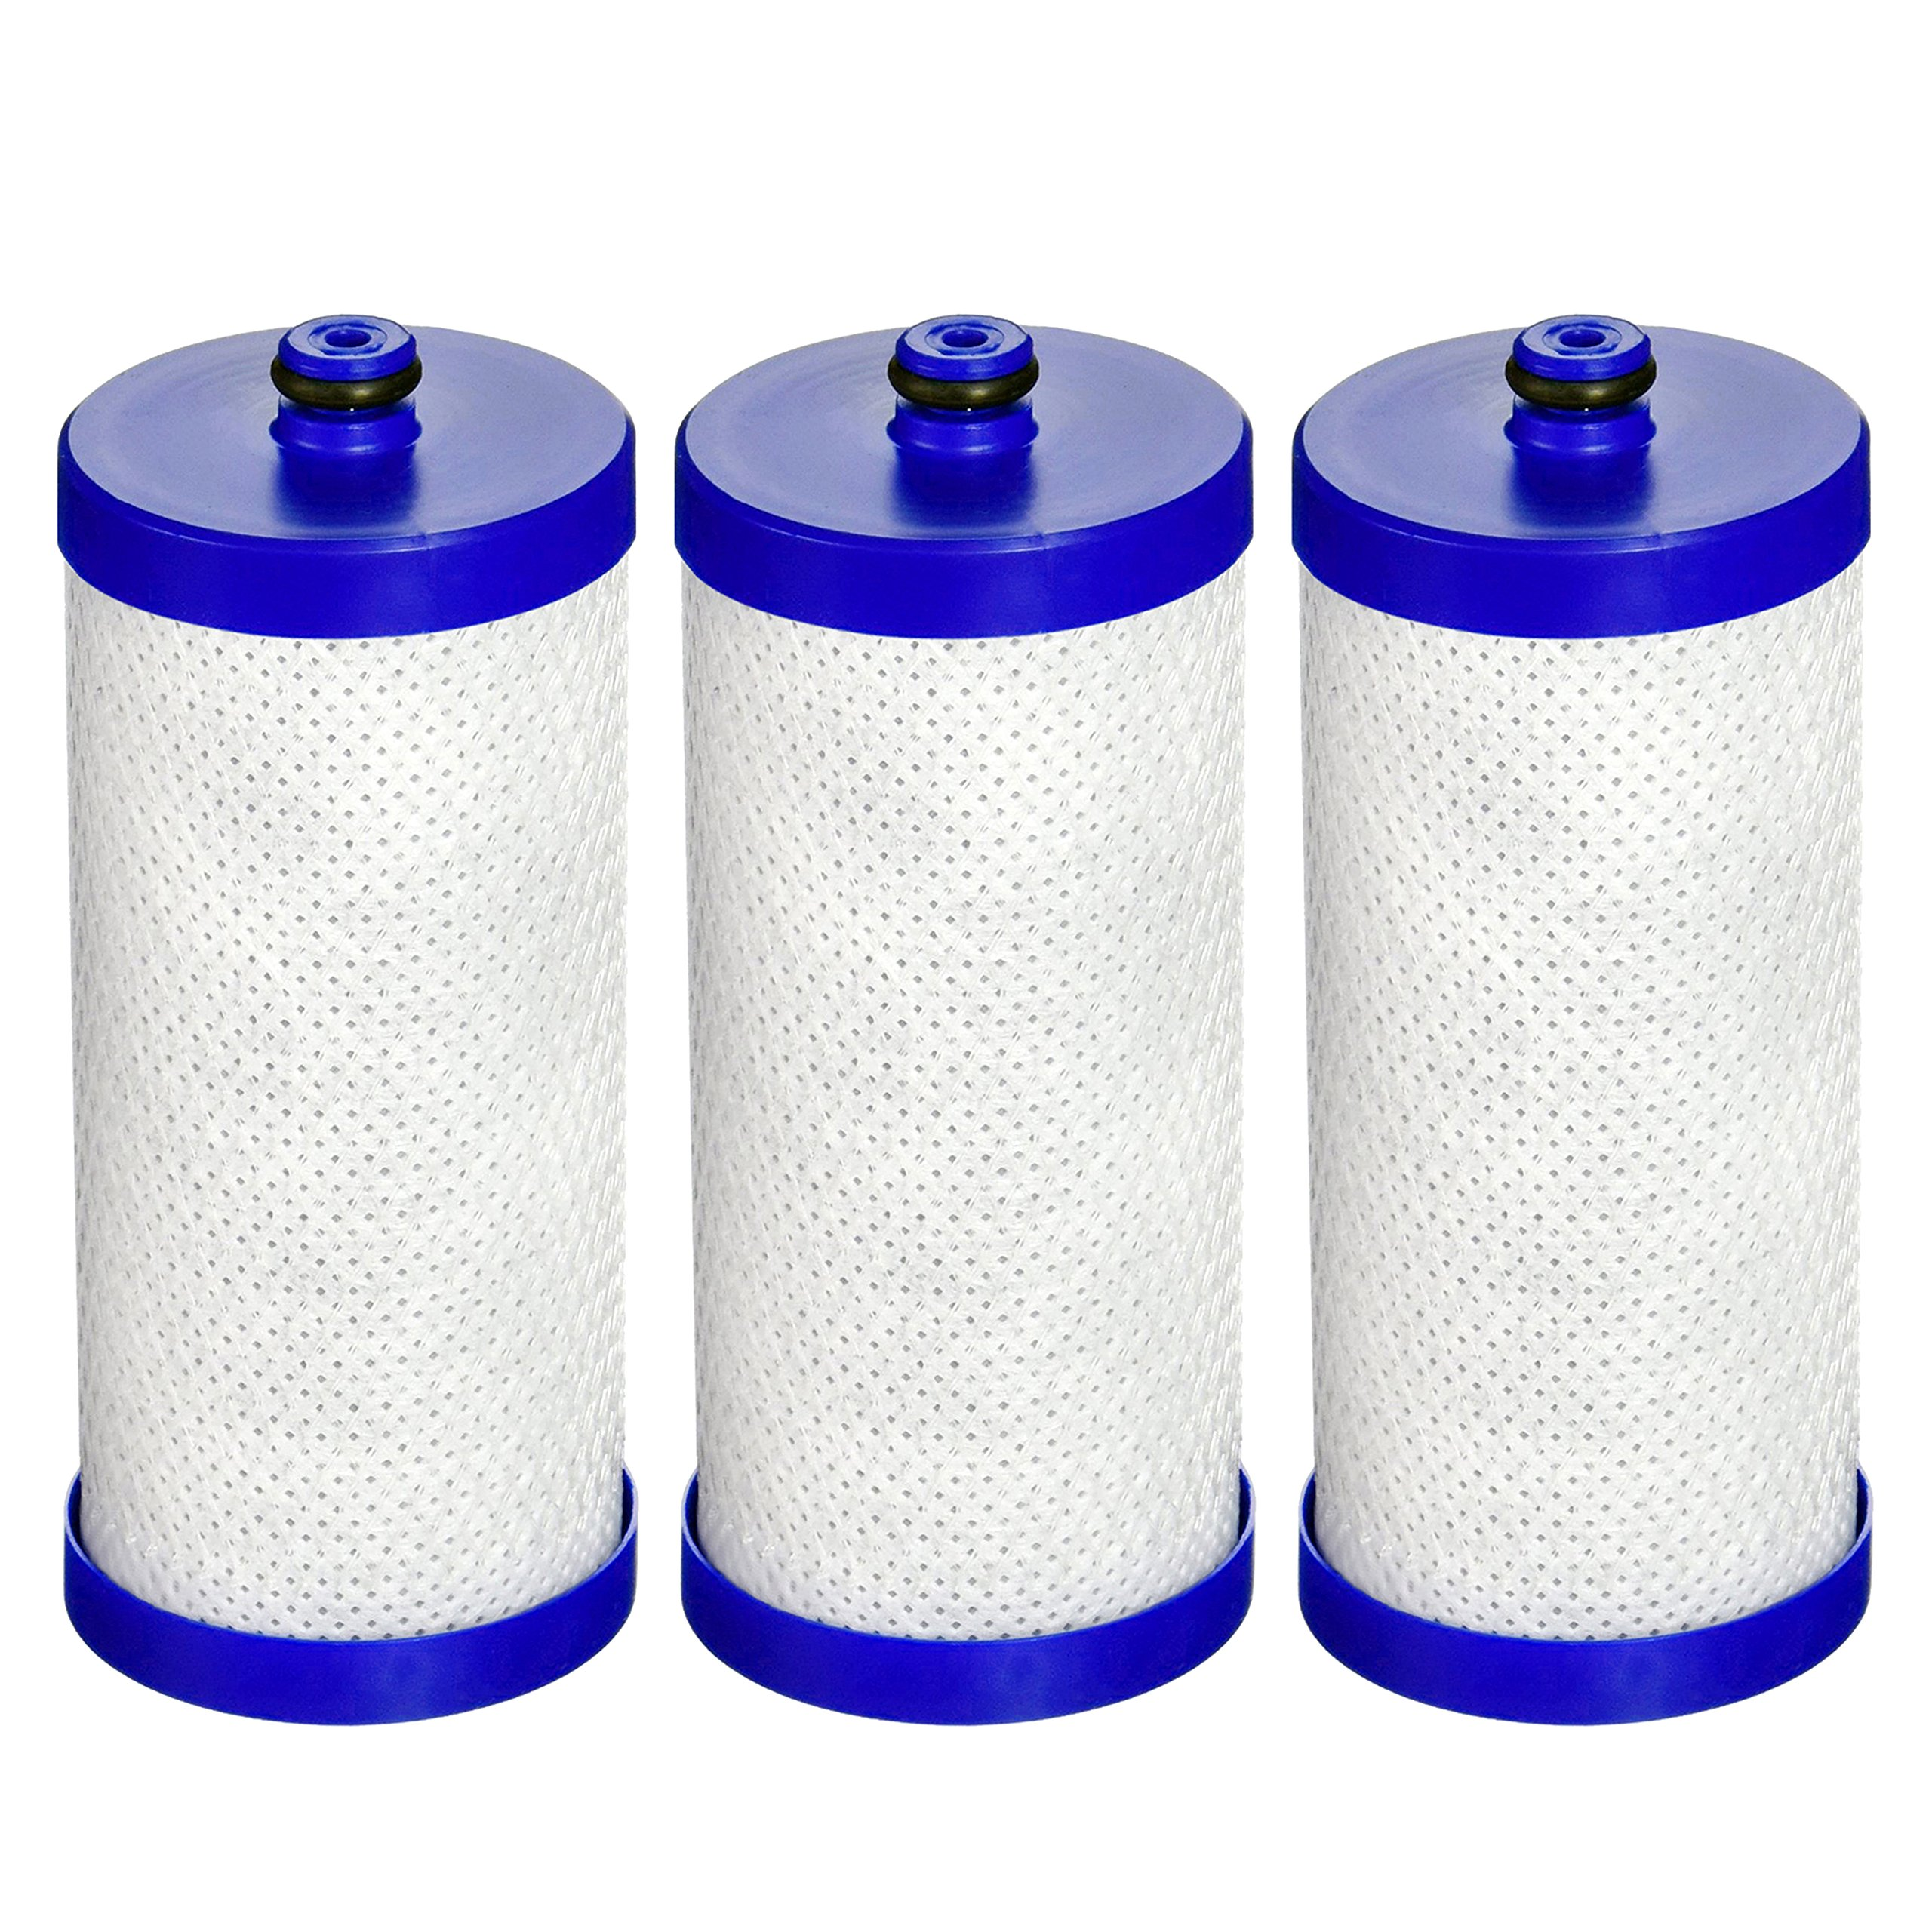 AQUACREST Replacement Refrigerator Water Filter, Compatible with WF1CB, WFCB, RG100, NGRG2000, WF284, 9910, 469906, 469910 (Pack of 3)